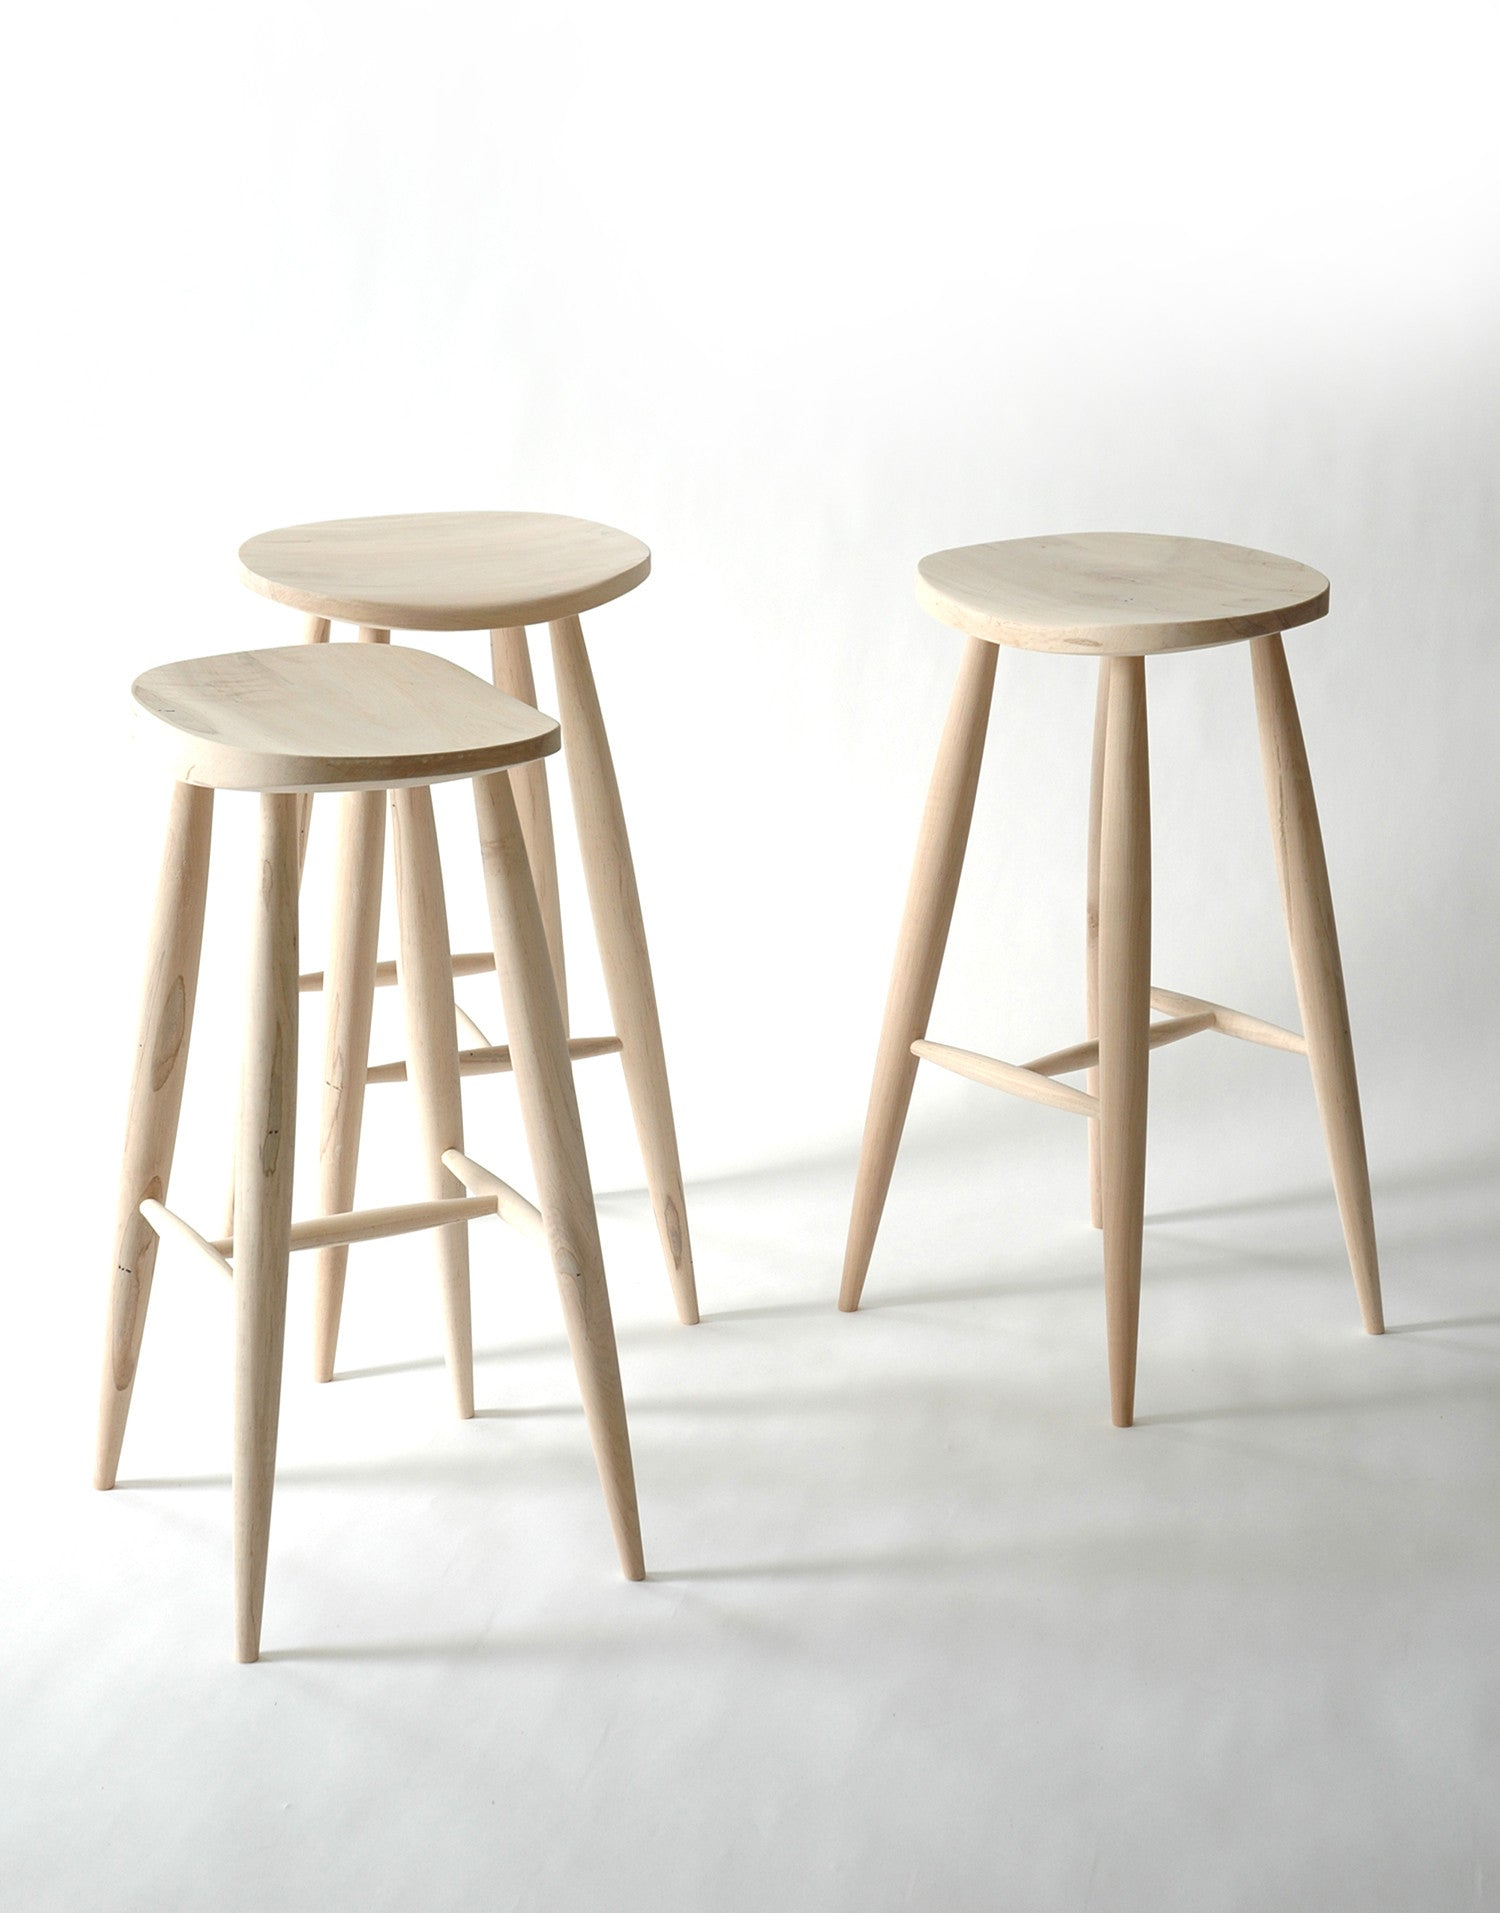 Terrific Devon Tall Stool Lamtechconsult Wood Chair Design Ideas Lamtechconsultcom